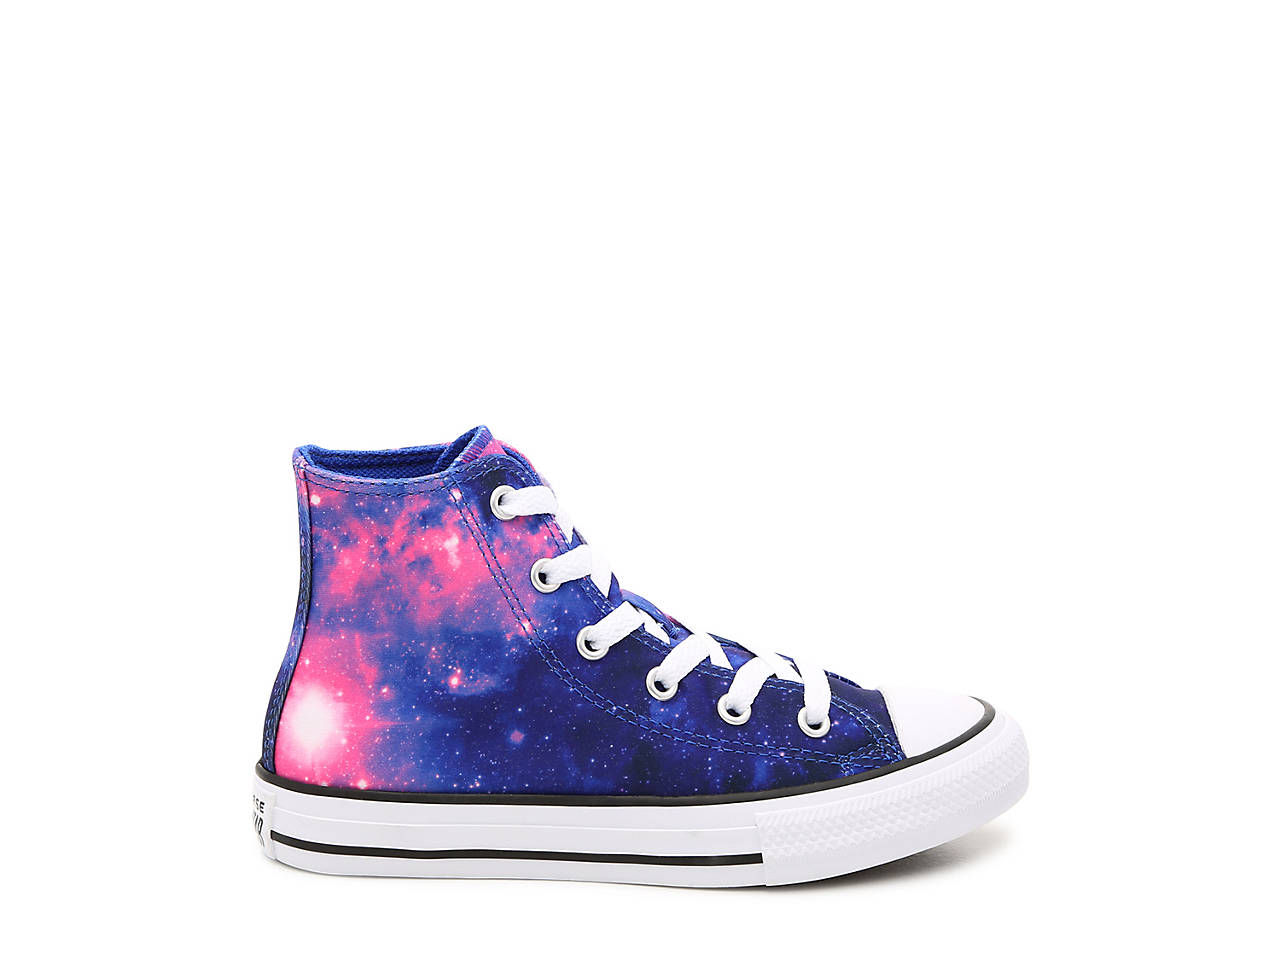 ec5032beaa Chuck Taylor All Star Miss Galaxy High-Top Sneaker - Kids'